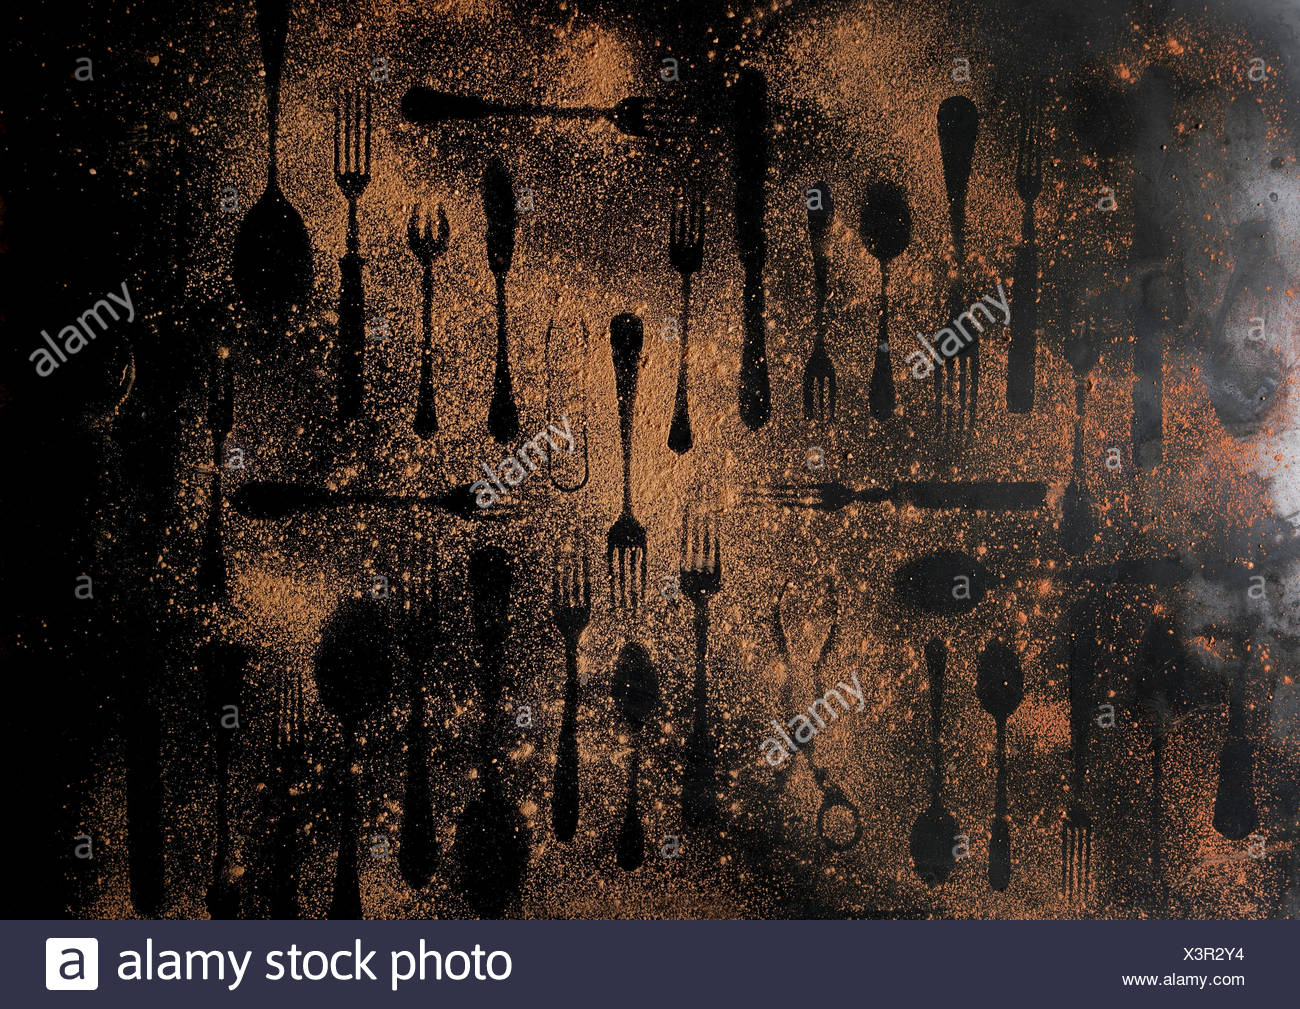 Shapes of disappeared vintage cutlery on brown dust over black metal background. Top view - Stock Image